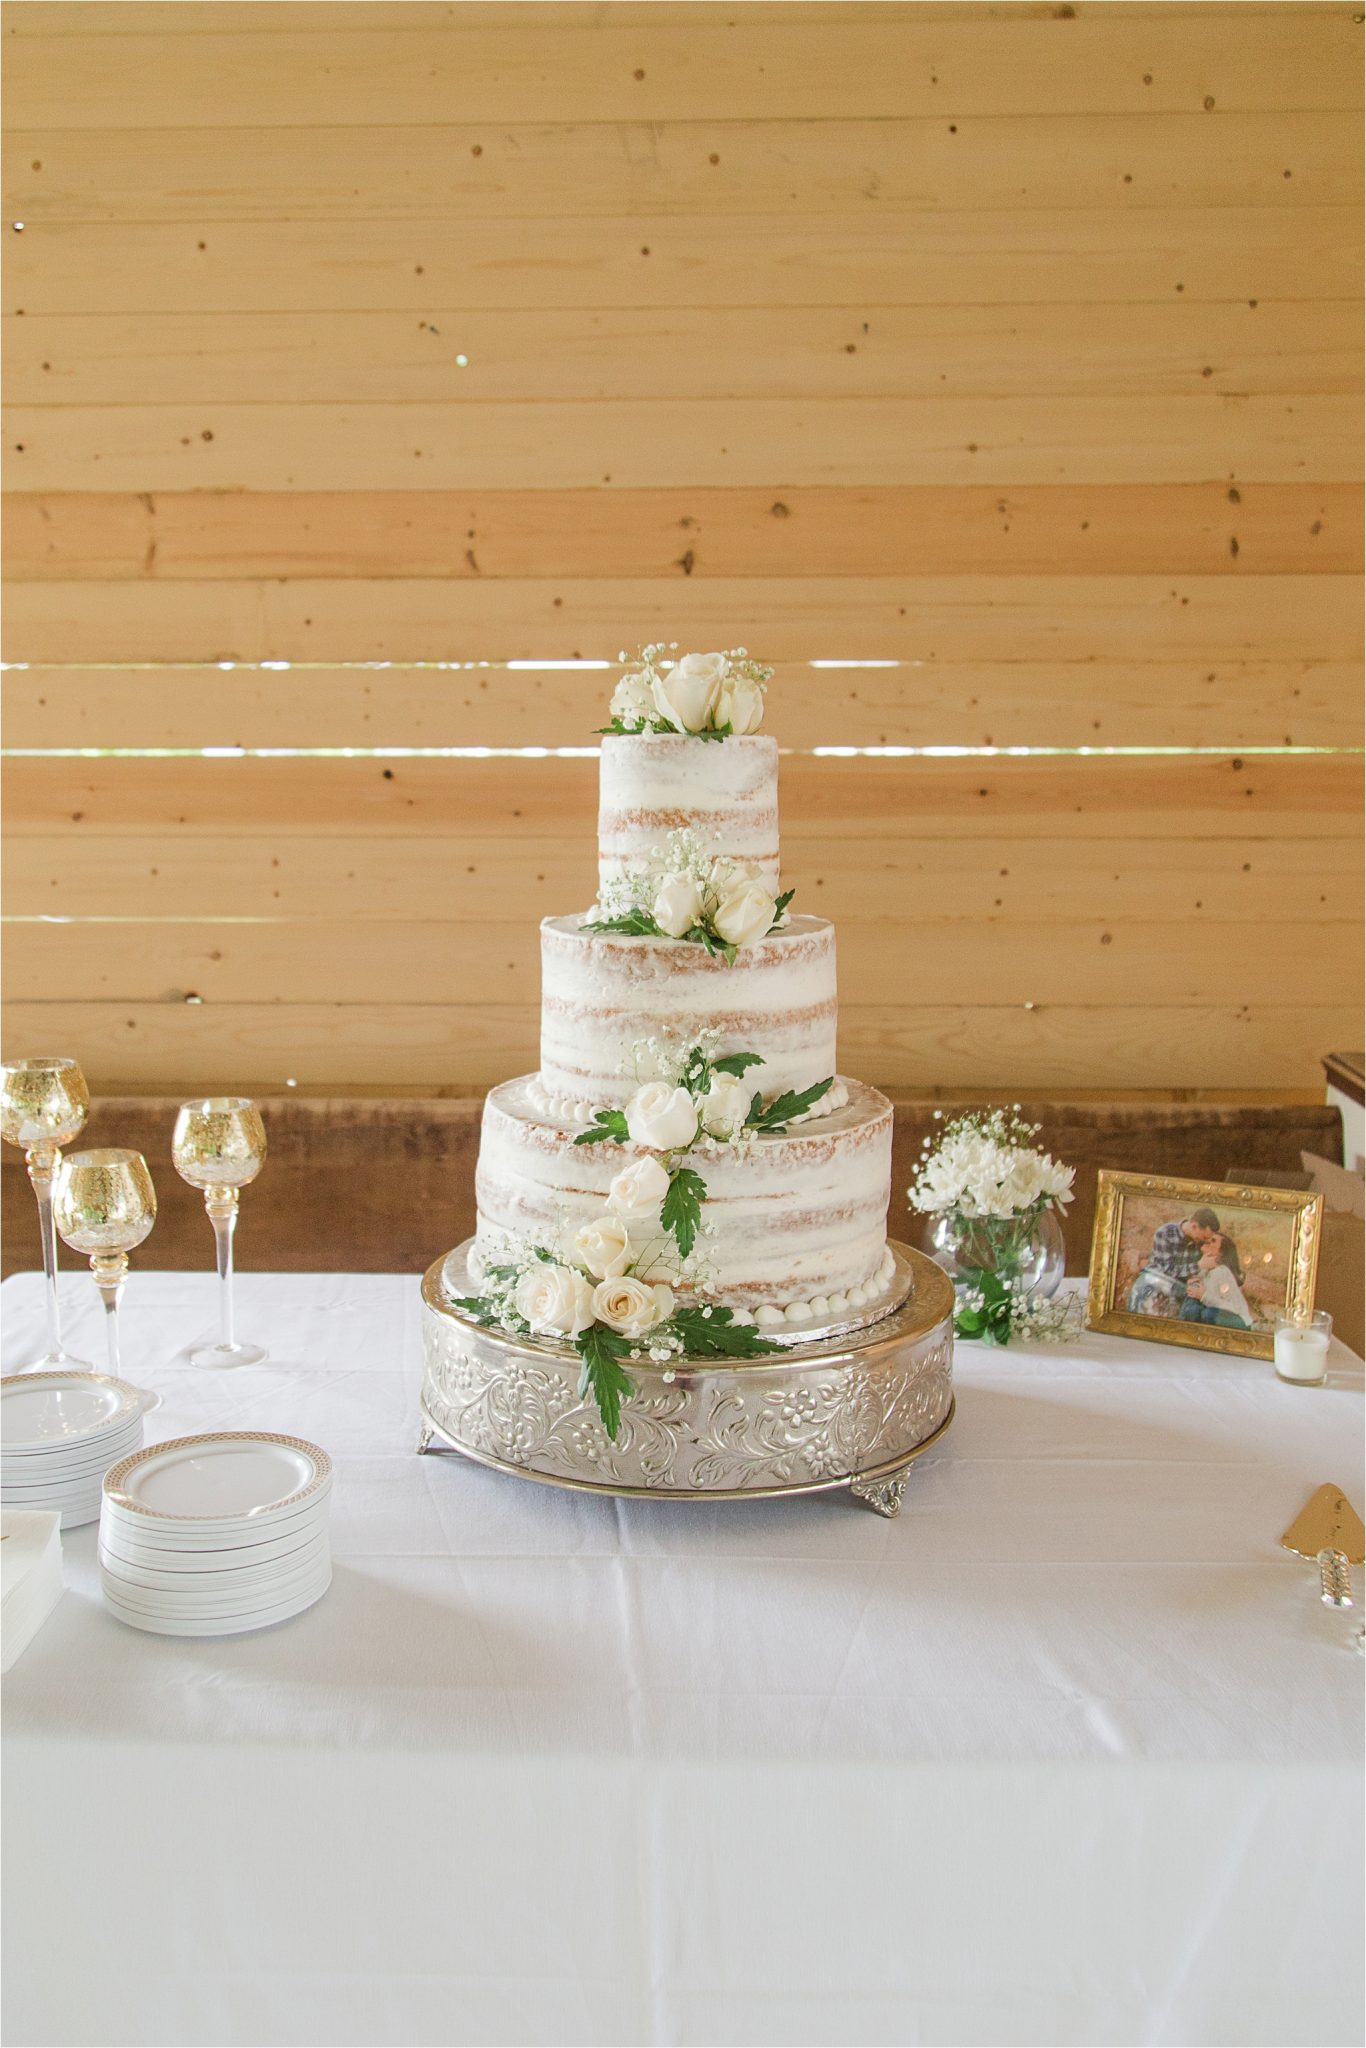 Hedge Farm Wedding, Alabama Wedding Photographer, Barn Wedding, Wedding Cake, Wedding Desserts